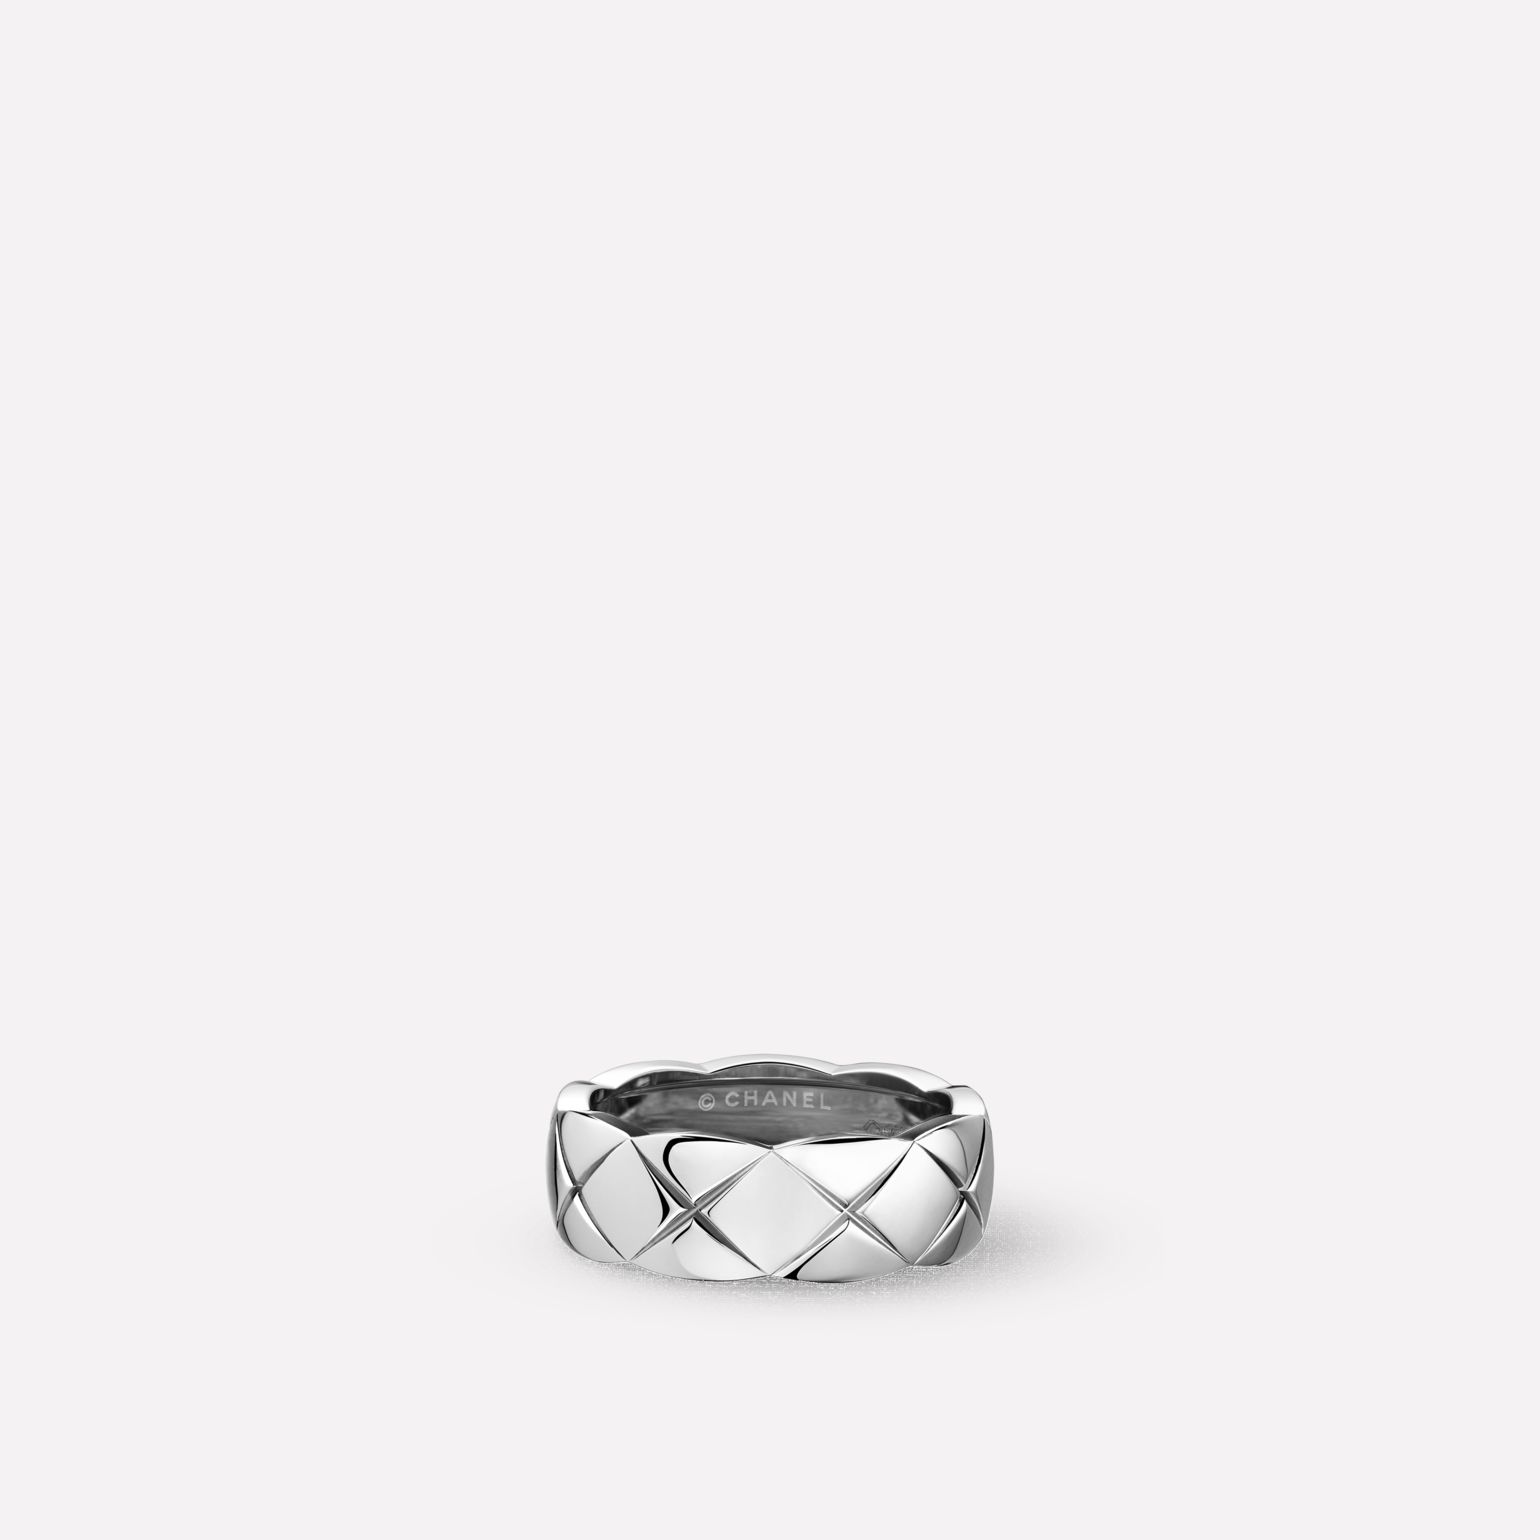 Coco Crush ring Quilted motif, small version, 18K white gold